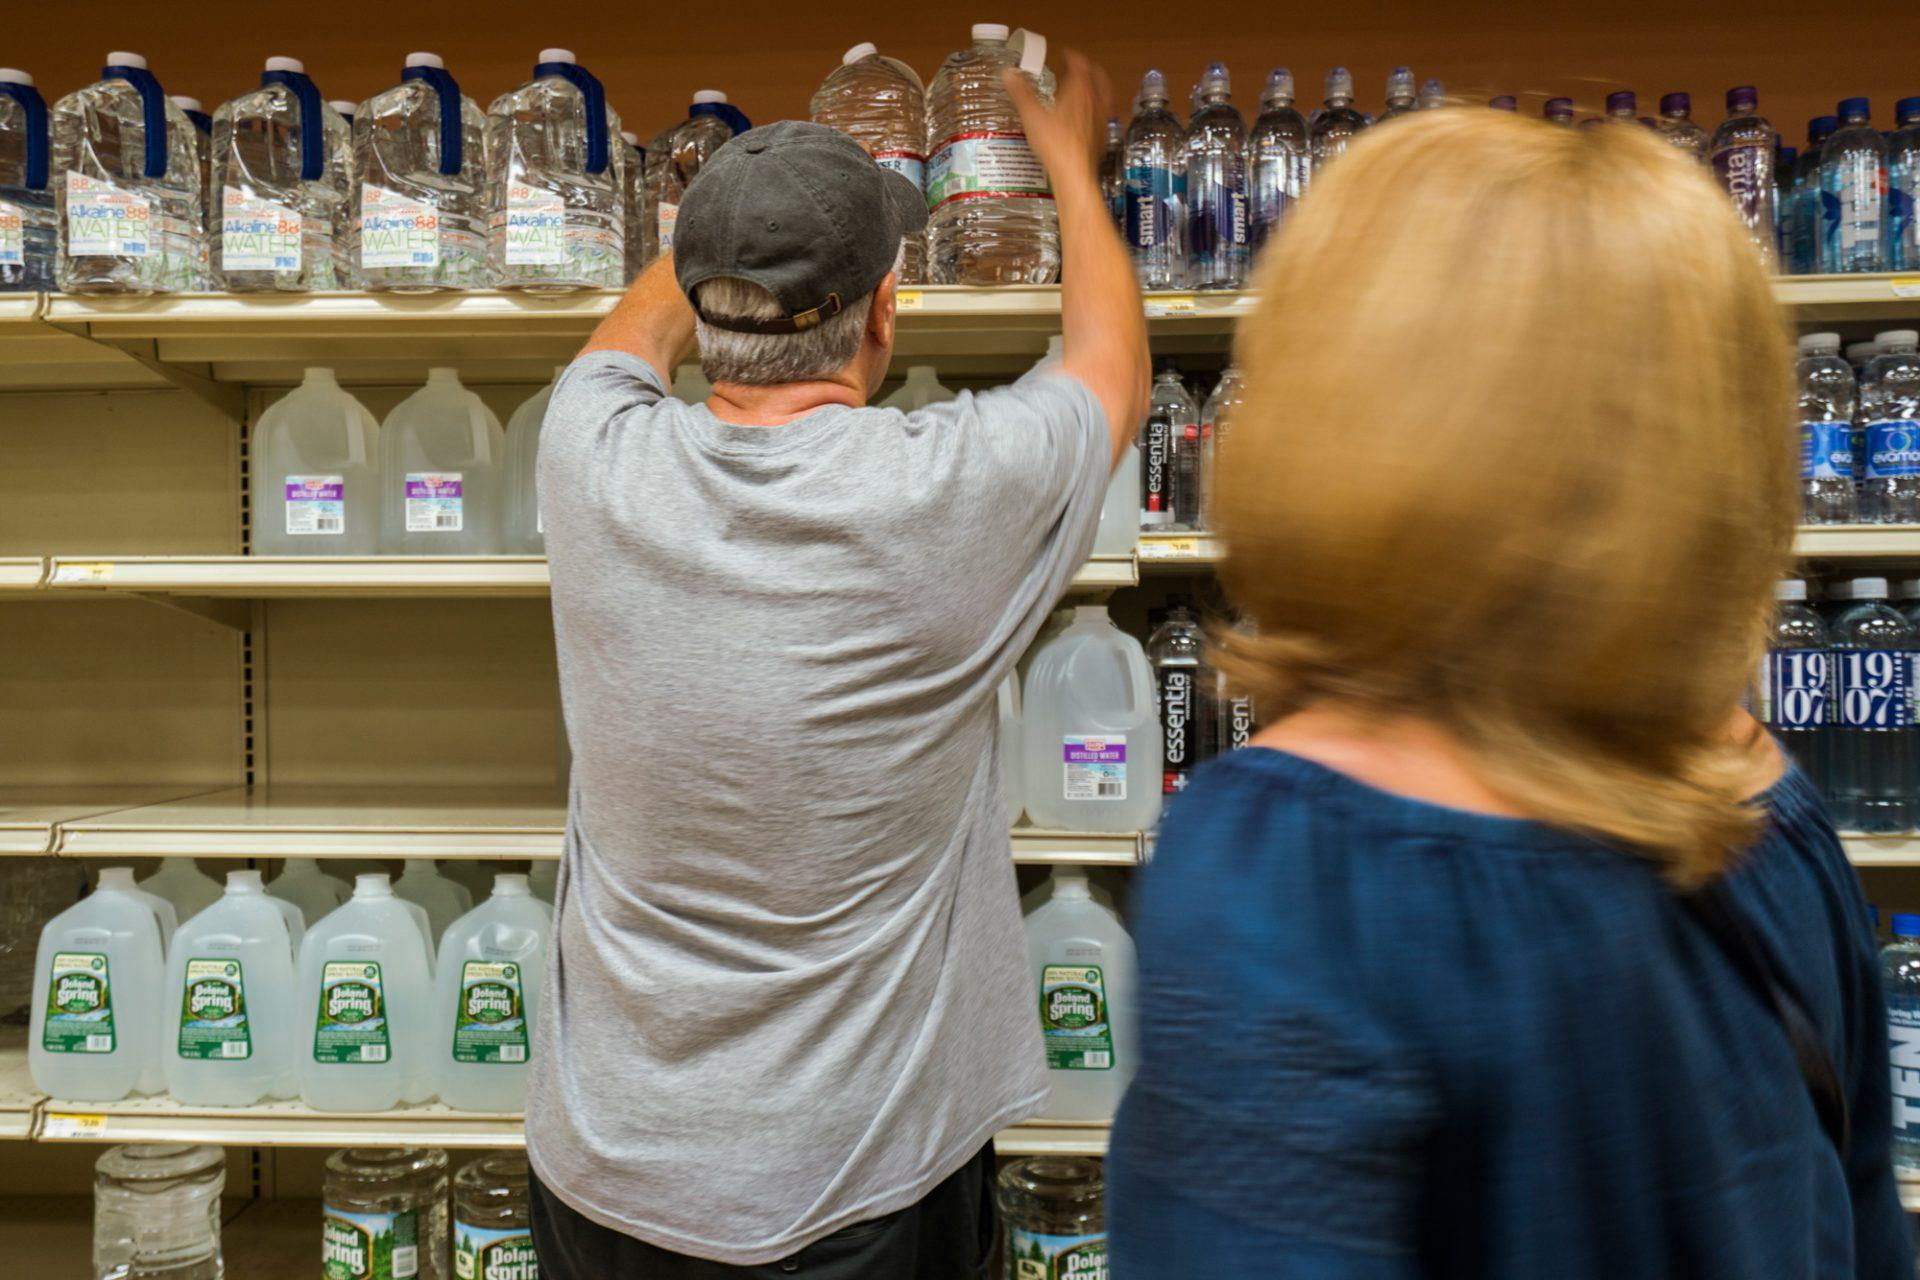 Boone couple Cathy Tarlton and Tim Tarlton purchase gallons of water at Earth Fare in preparation for Florence.